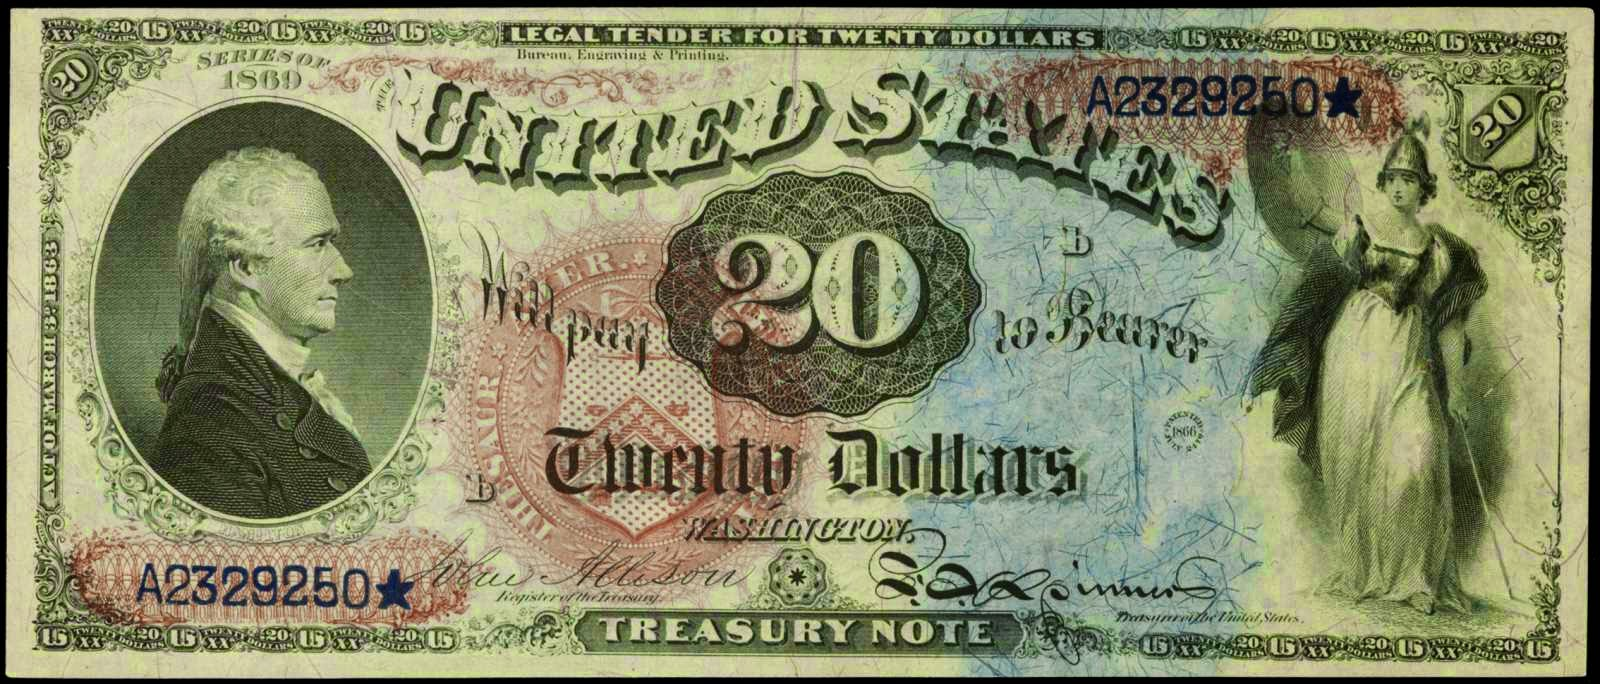 United States 1869 20 Dollar Legal Tender Rainbow Note